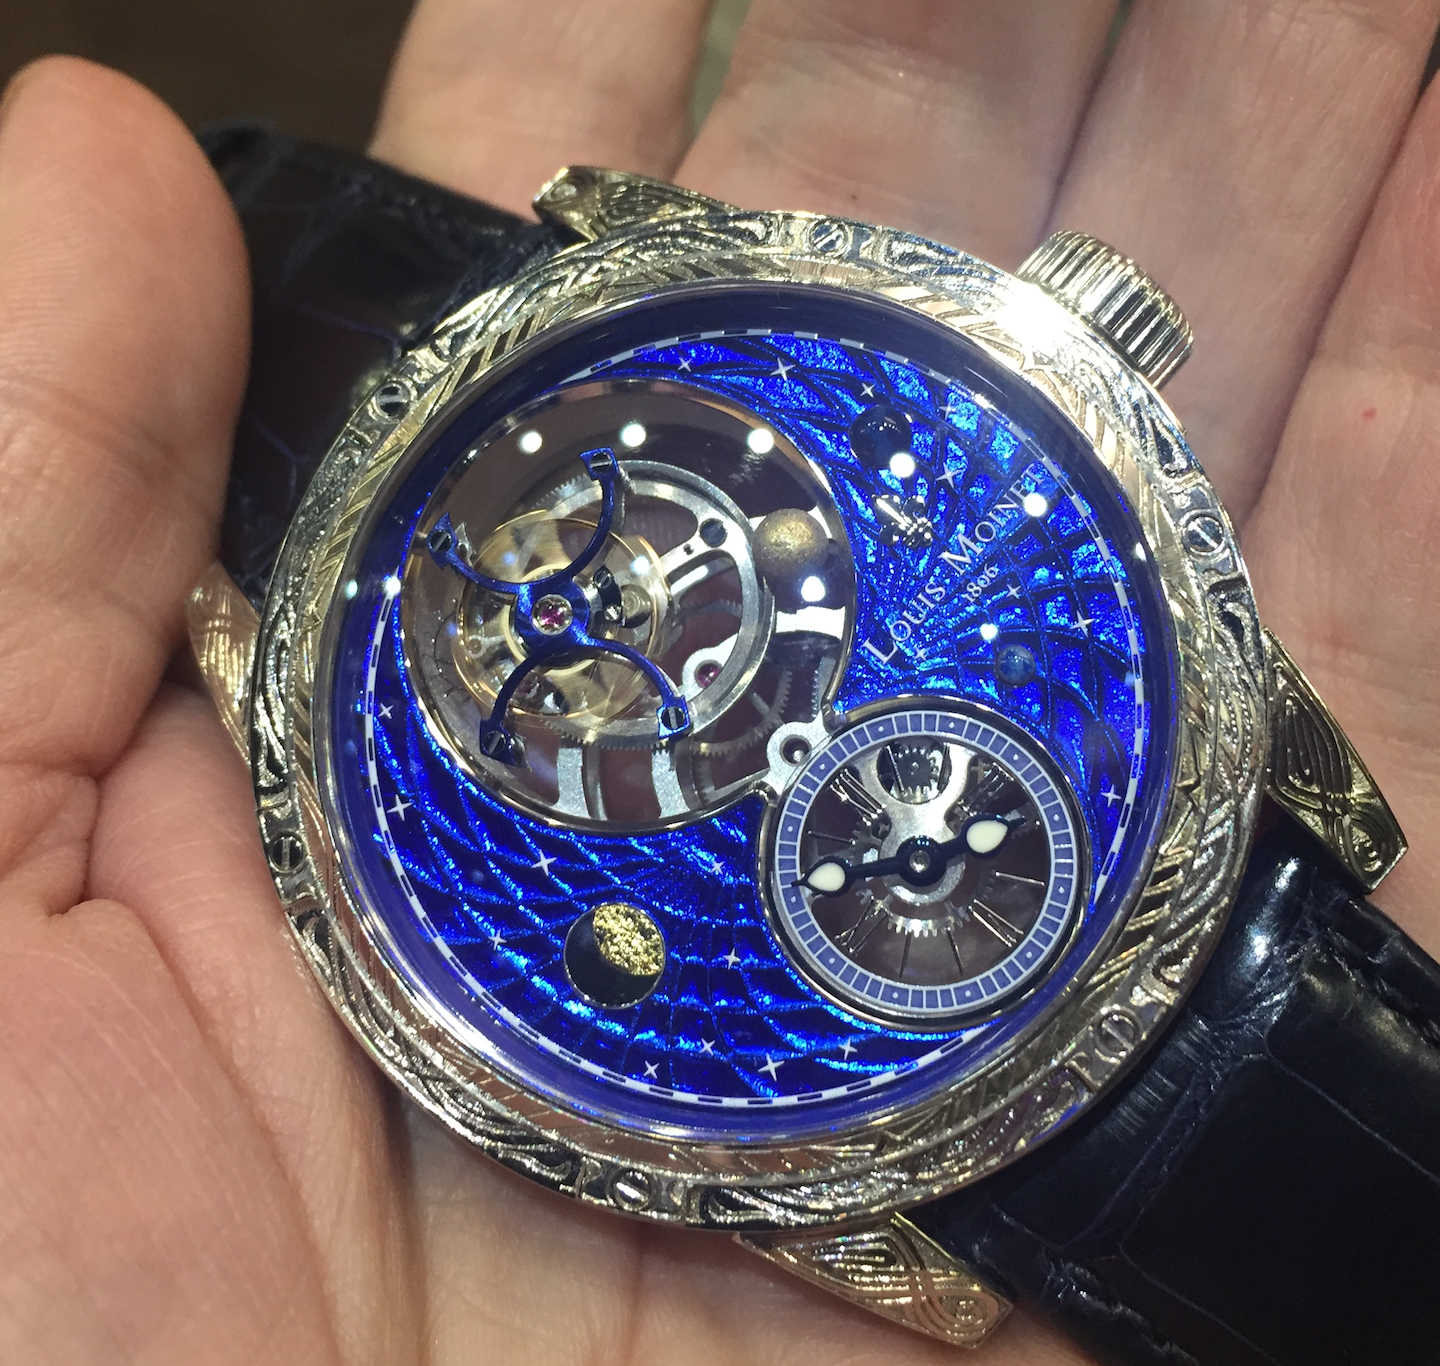 The Magic Blue dial of the Louis Moinet Space Mystery watch is a top-secret composition.